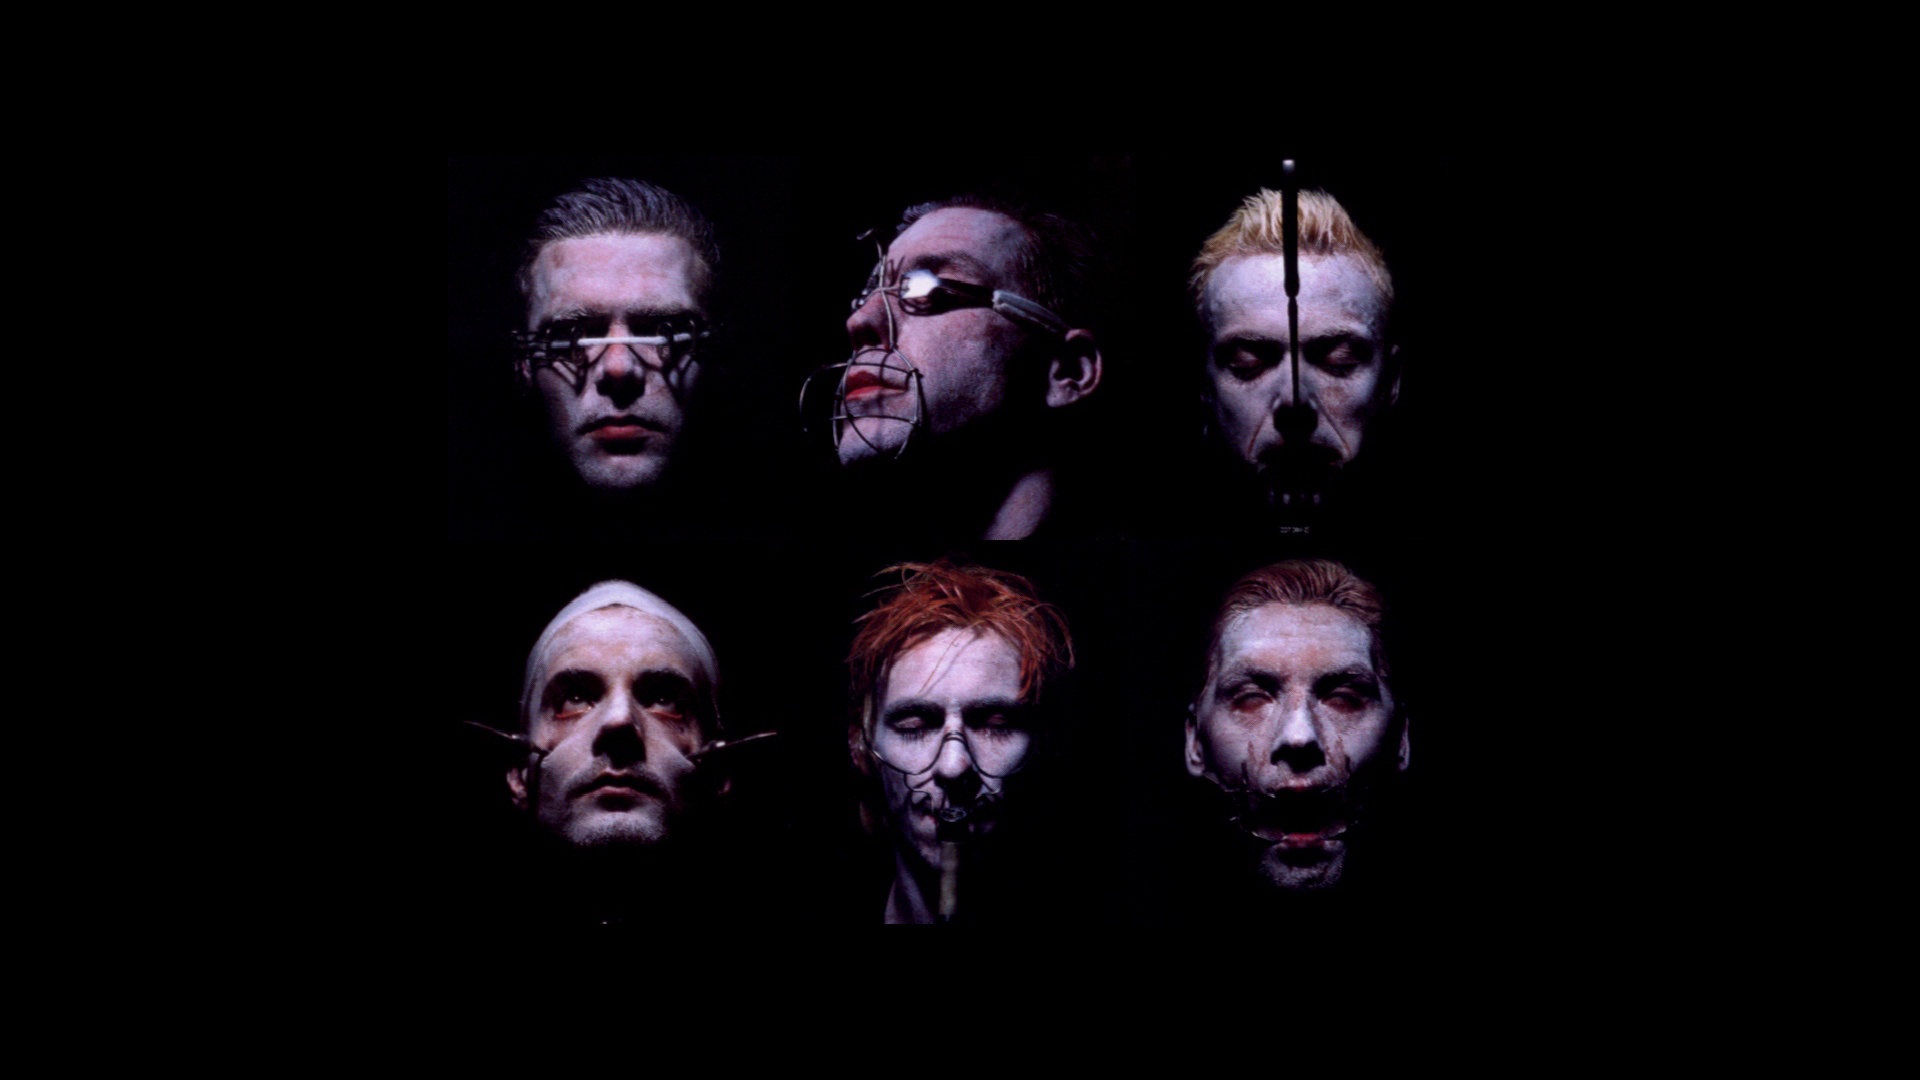 Rammstein Wallpapers